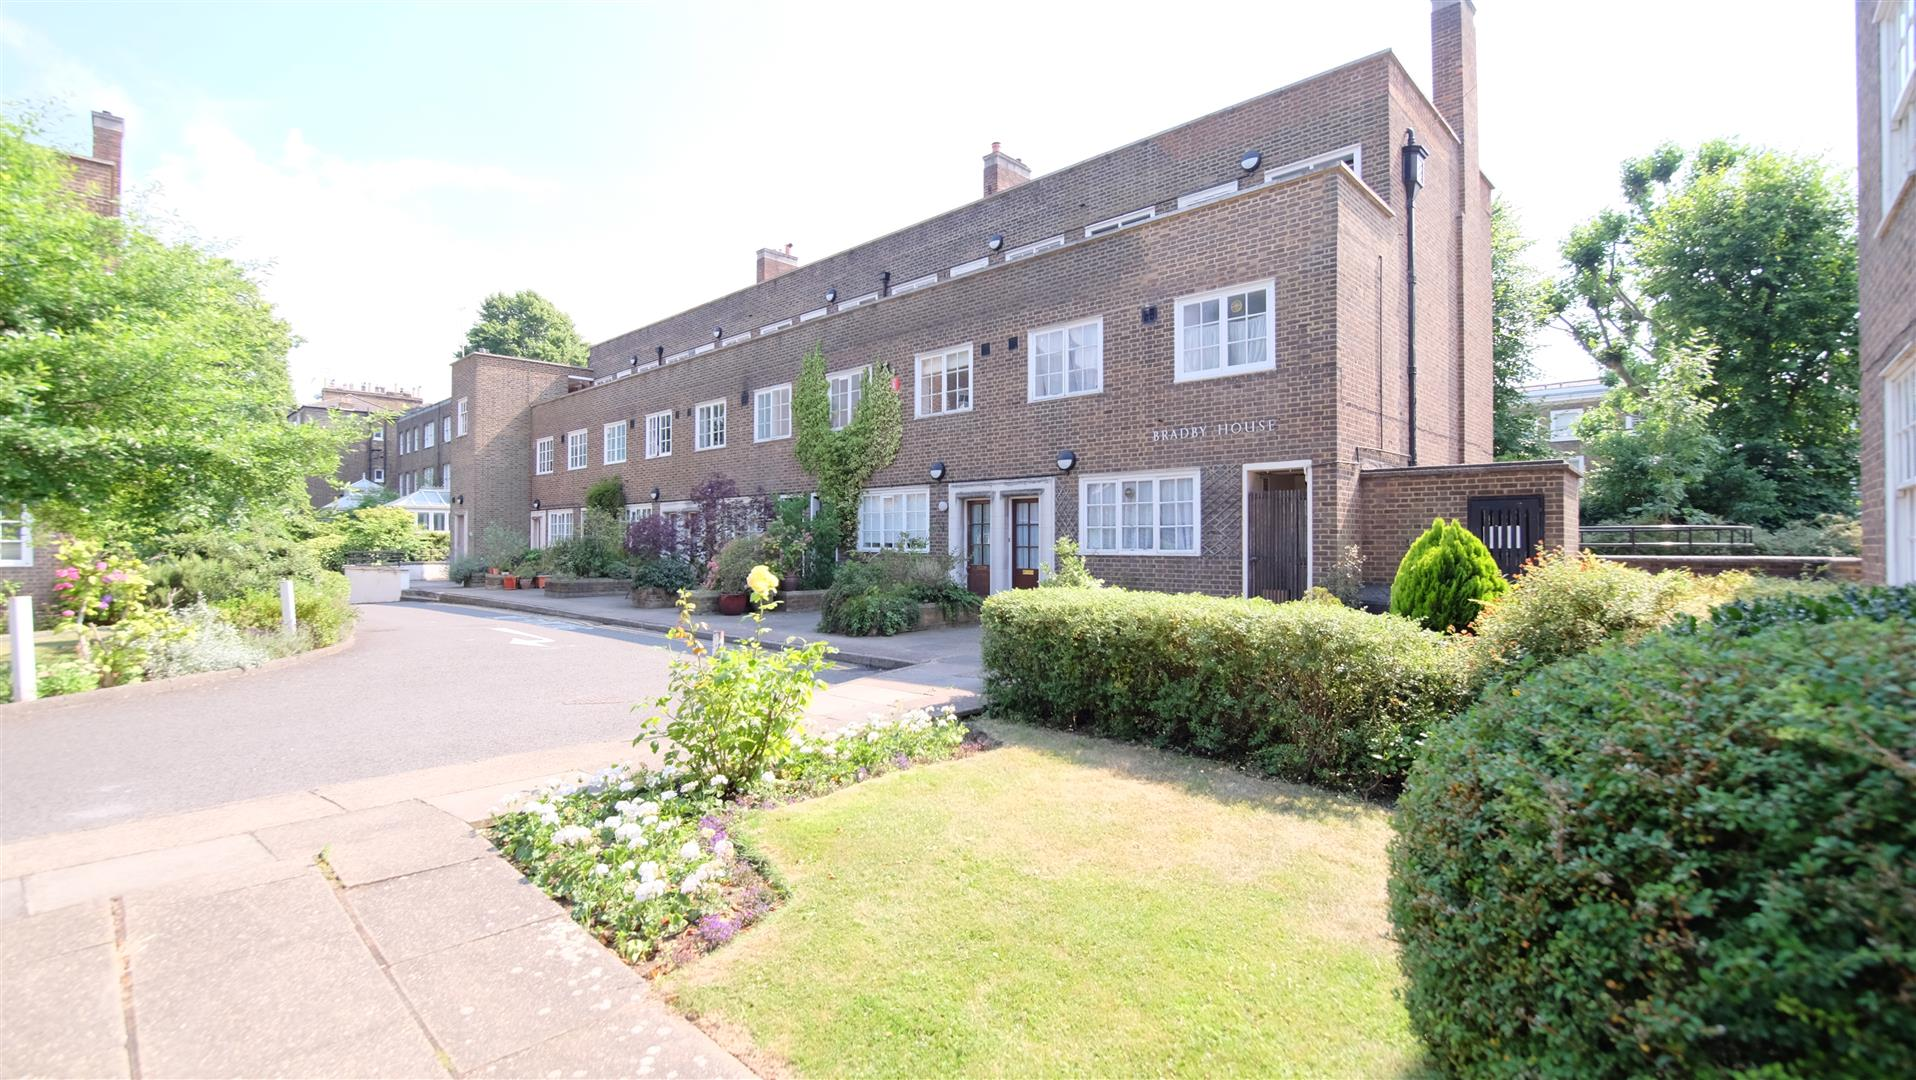 Property for sale in Carlton Hill, St Johns Wood, NW8 9XE